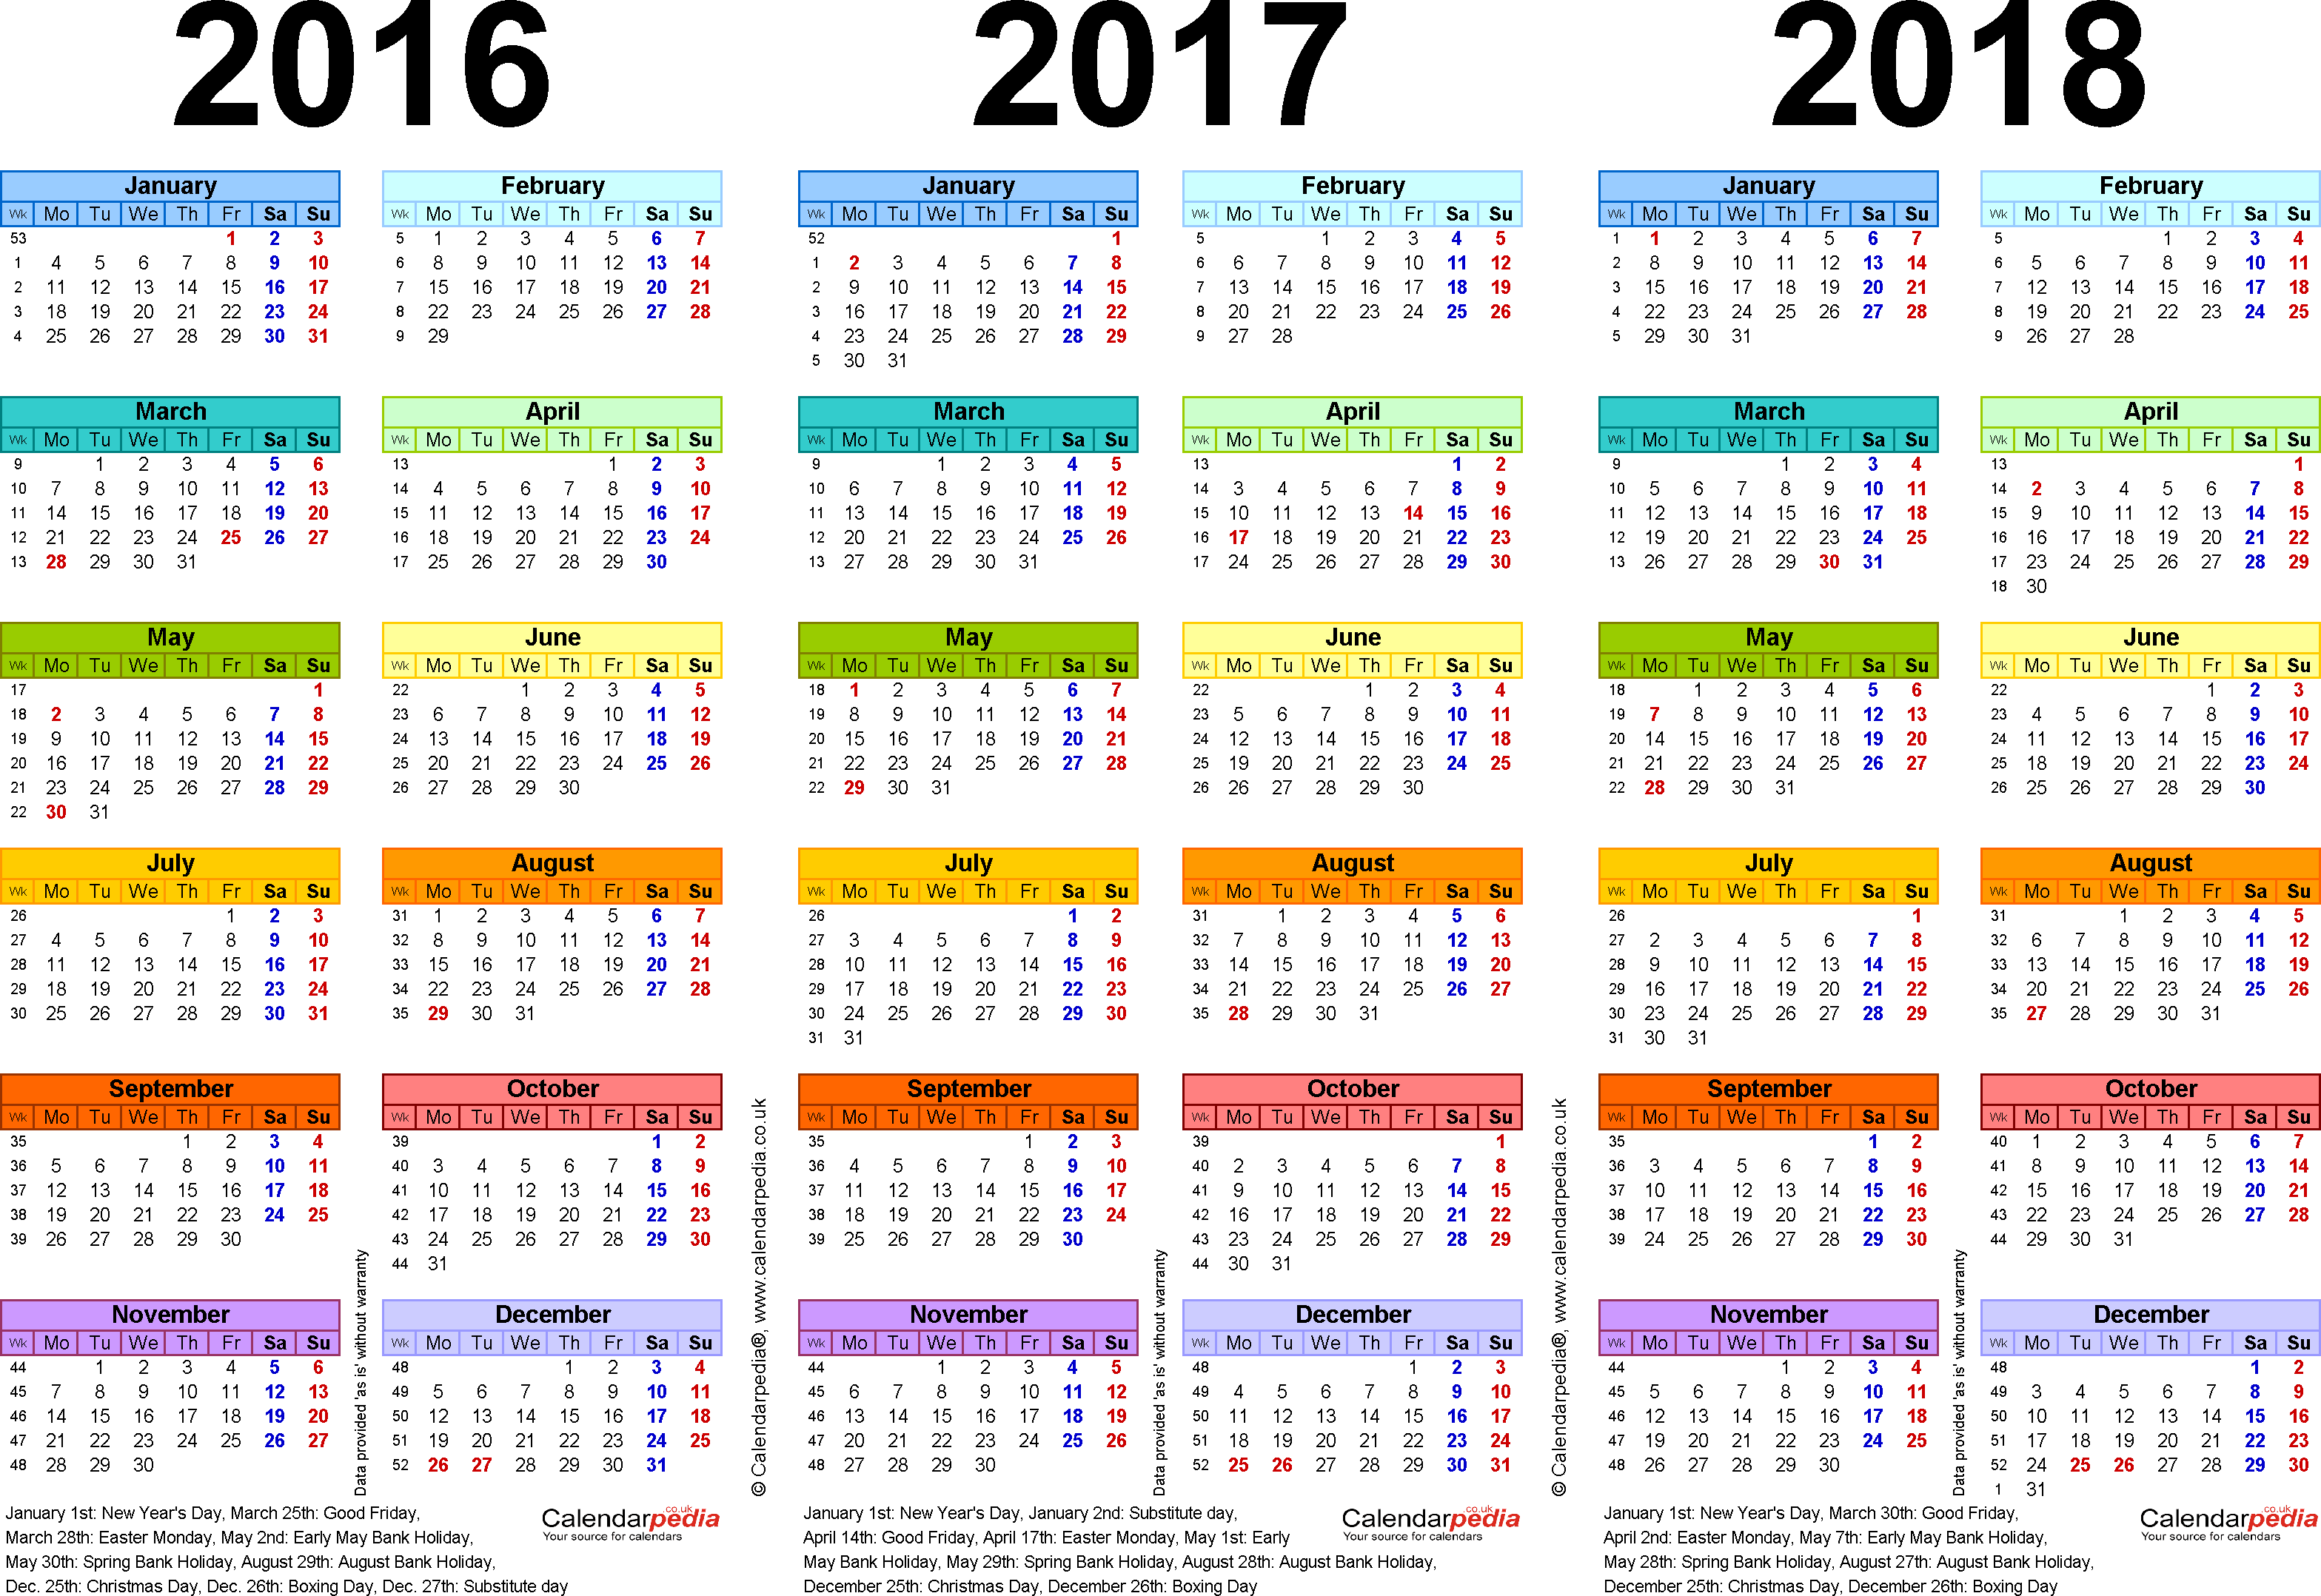 Template 1: Word template for three year calendar 2016-2018 in colour (landscape orientation, 1 page, A4)